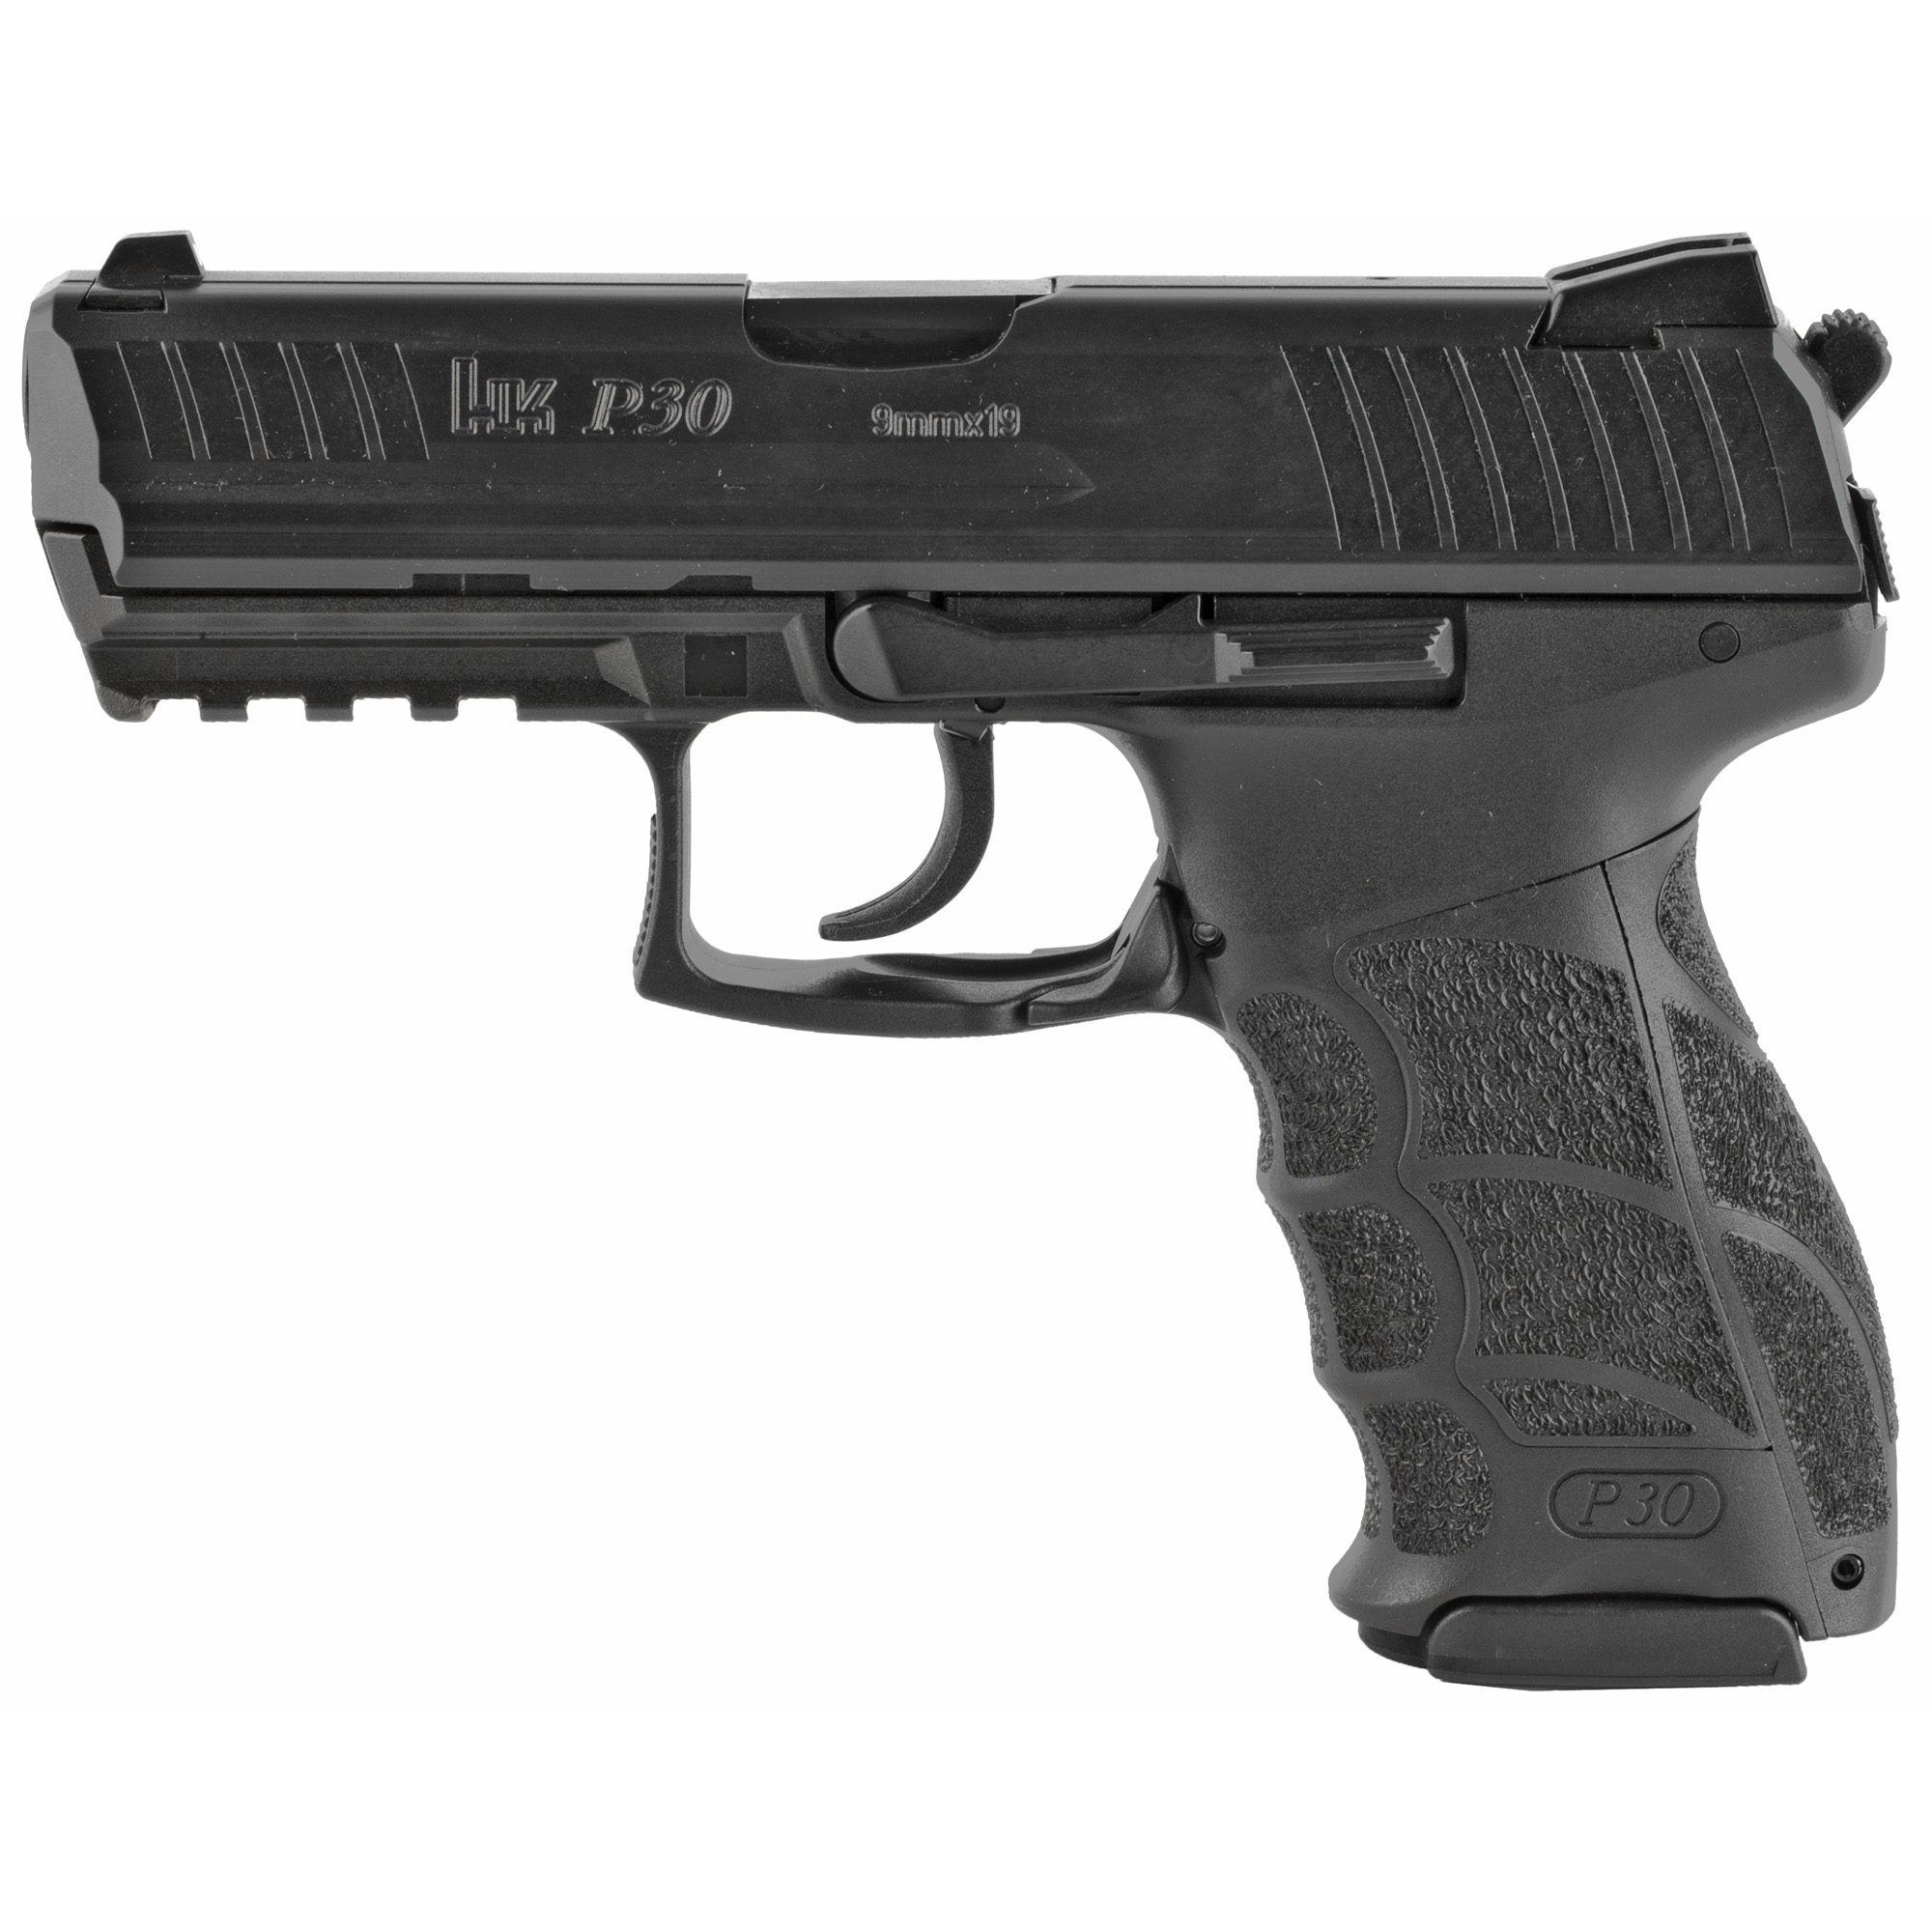 """A recent HK pistol design"""" the P30 is a modern police and security pistol that combines function and safety. Ergonomic features include a special grip frame with interchangeable backstrap inserts and lateral plates"""" allowing the pistol to be individually adapted to any user. Ambidextrous controls include dual slide releases and magazine release levers. Variants with a conventional double-action/single action trigger have a serrated decocking button located on the rear of the frame. Variants with HK's enhanced double action only Law Enforcement Modification* (LEM) trigger have no external decocking controls."""